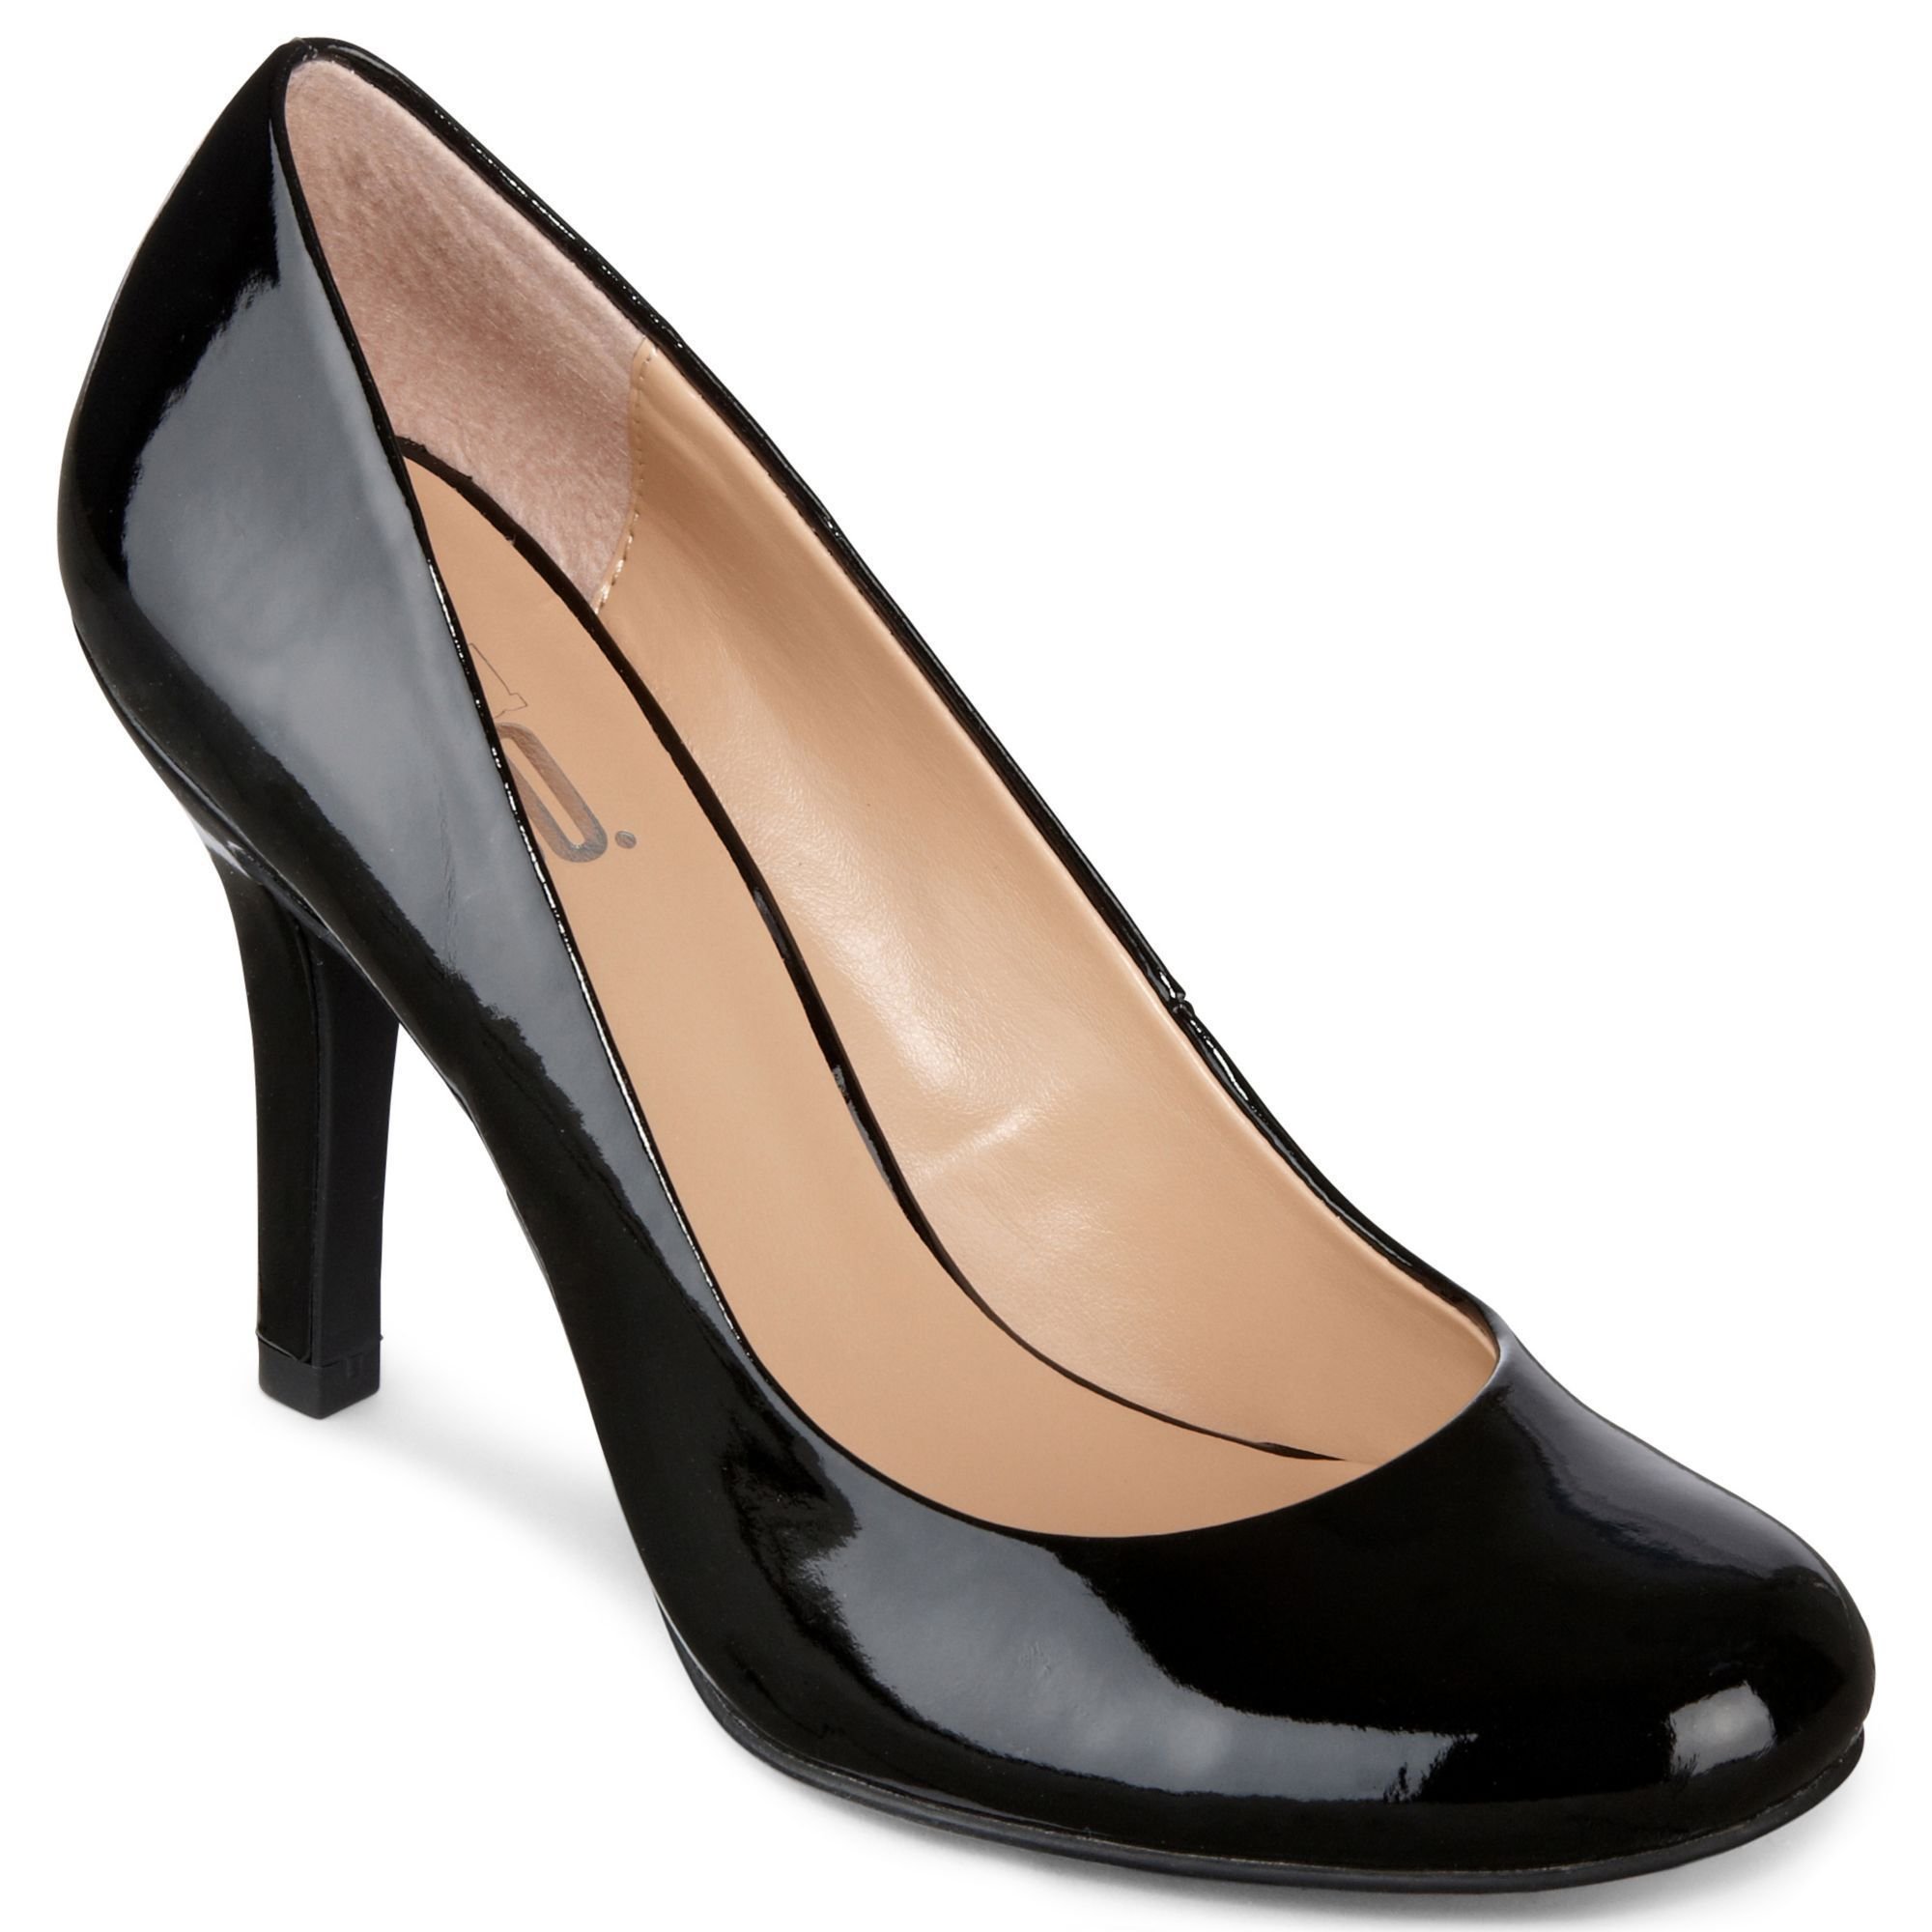 9 Co Etoile Pumps By Jcpenney Found On Heartthis Com Heartthis See Item Http Www Heartthis Com Product 356796733221 With Images Pumps Pumps Heels Heels